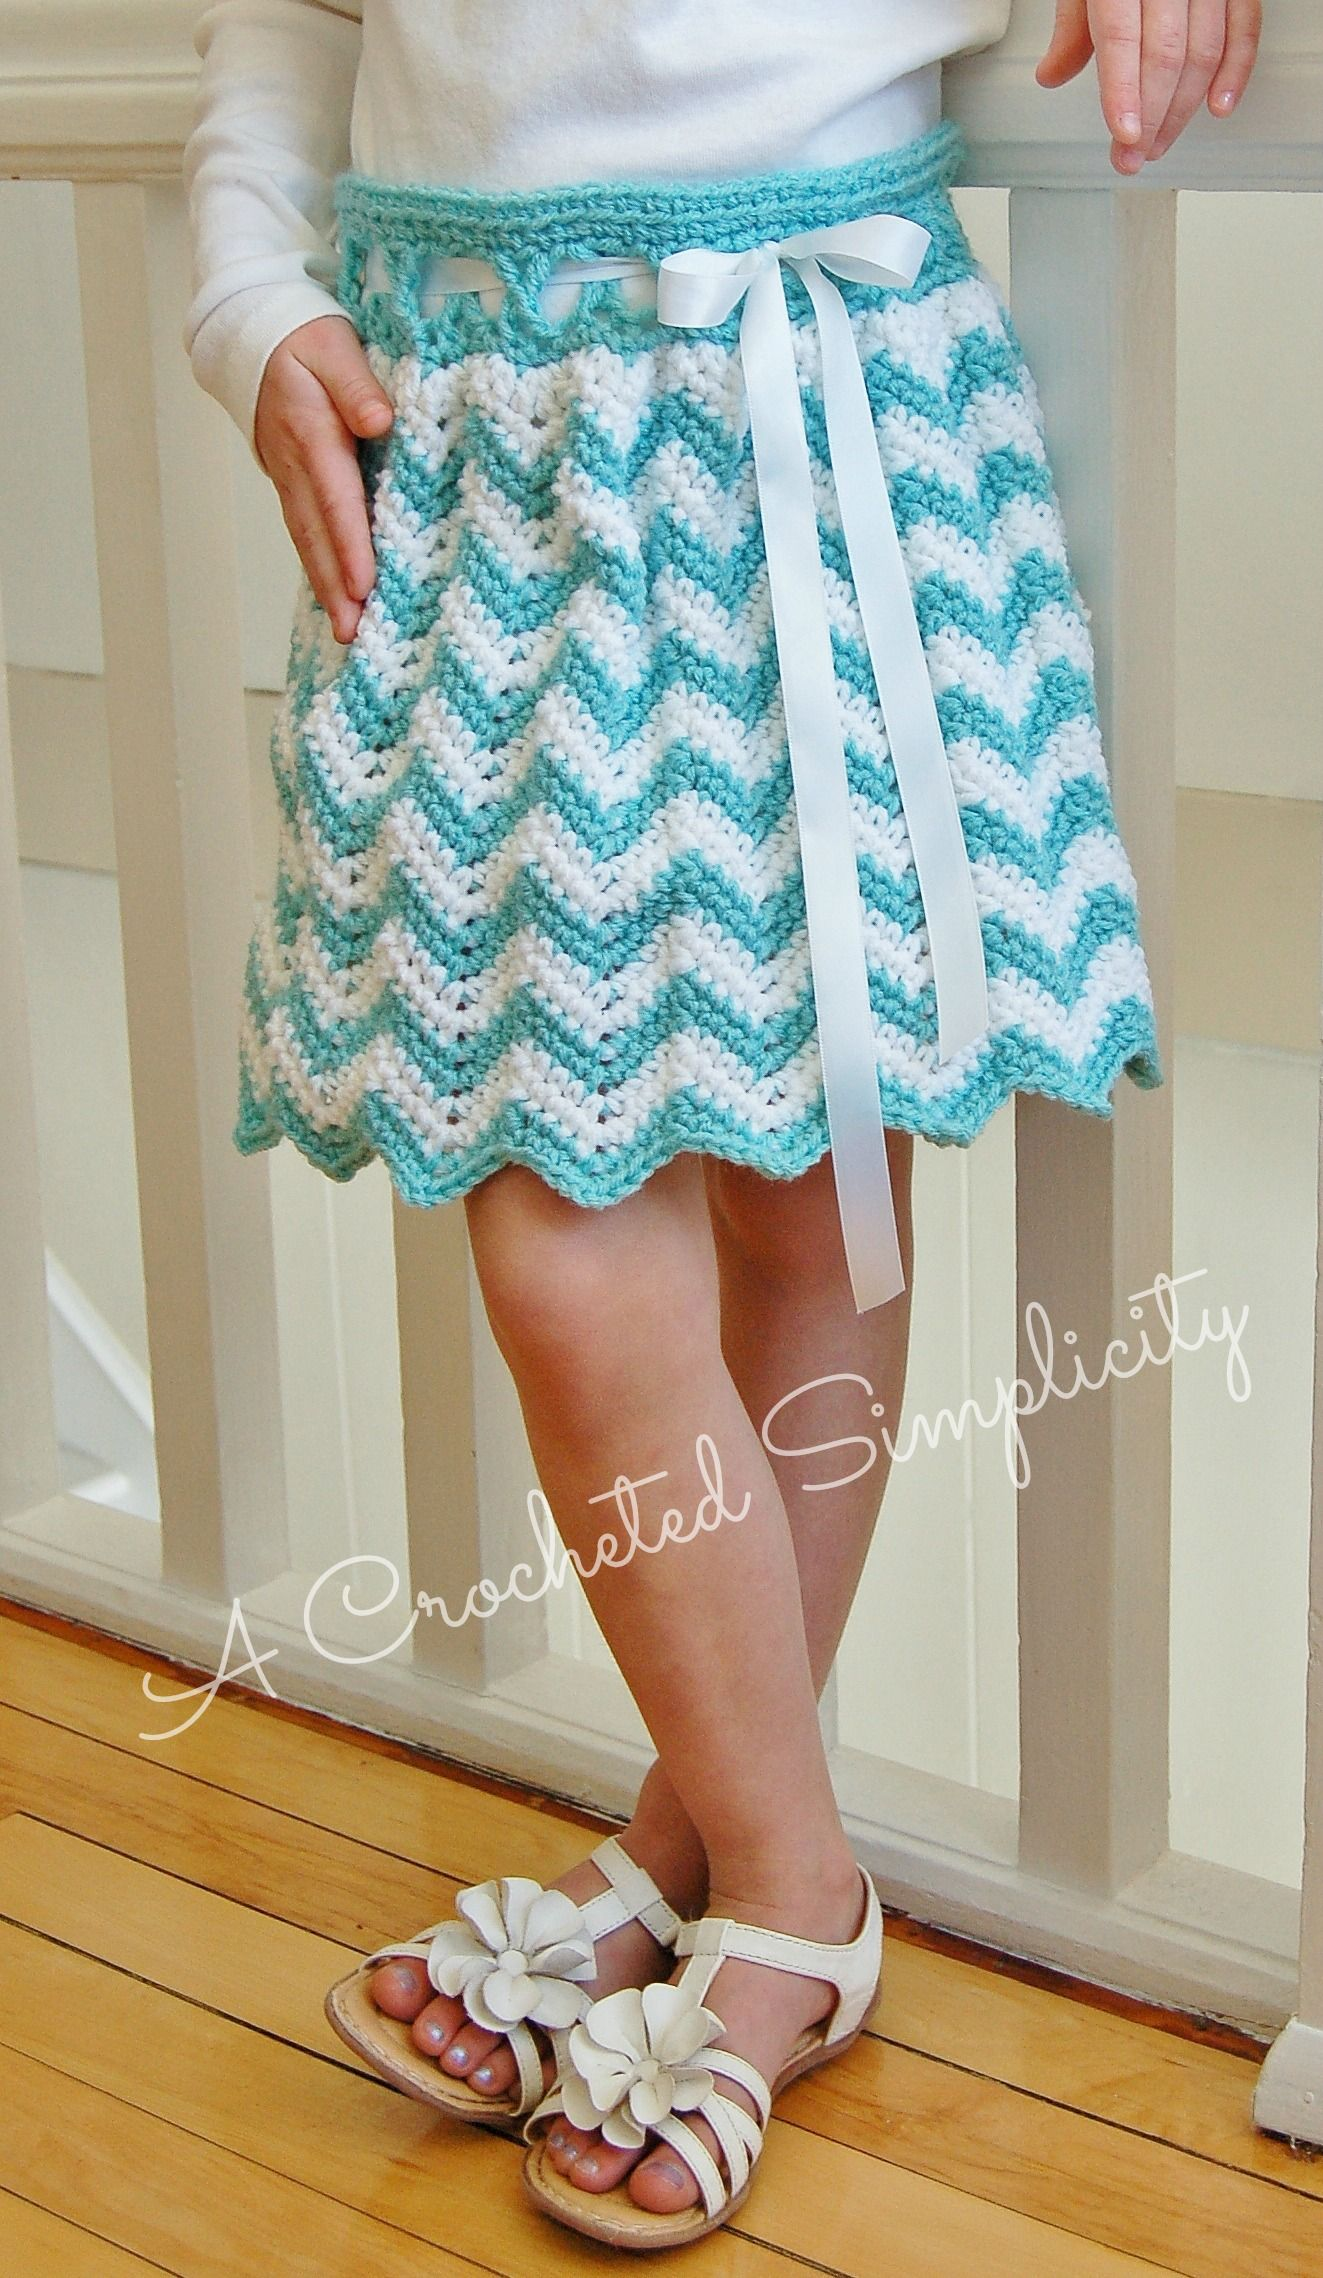 Crochet Pattern Chasing Chevrons Skirt By A Crocheted Simplicity #Crochetpattern